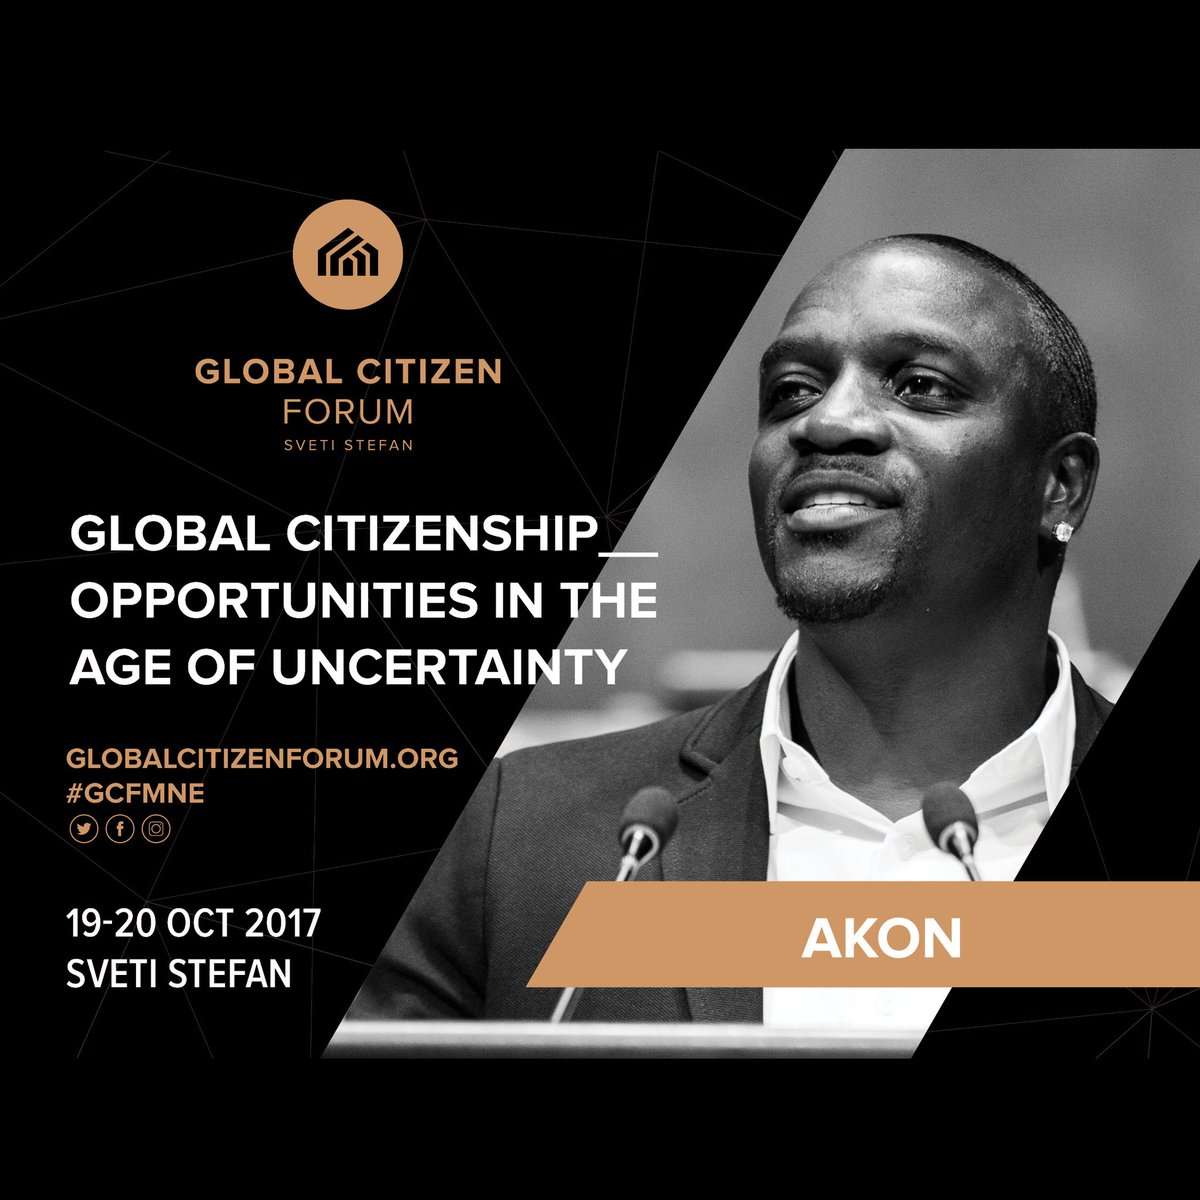 akon biography Akon biography, discography, chart history on top40 charts top40-chartscom  provides music charts from all over the world, like us / uk albums and singles.